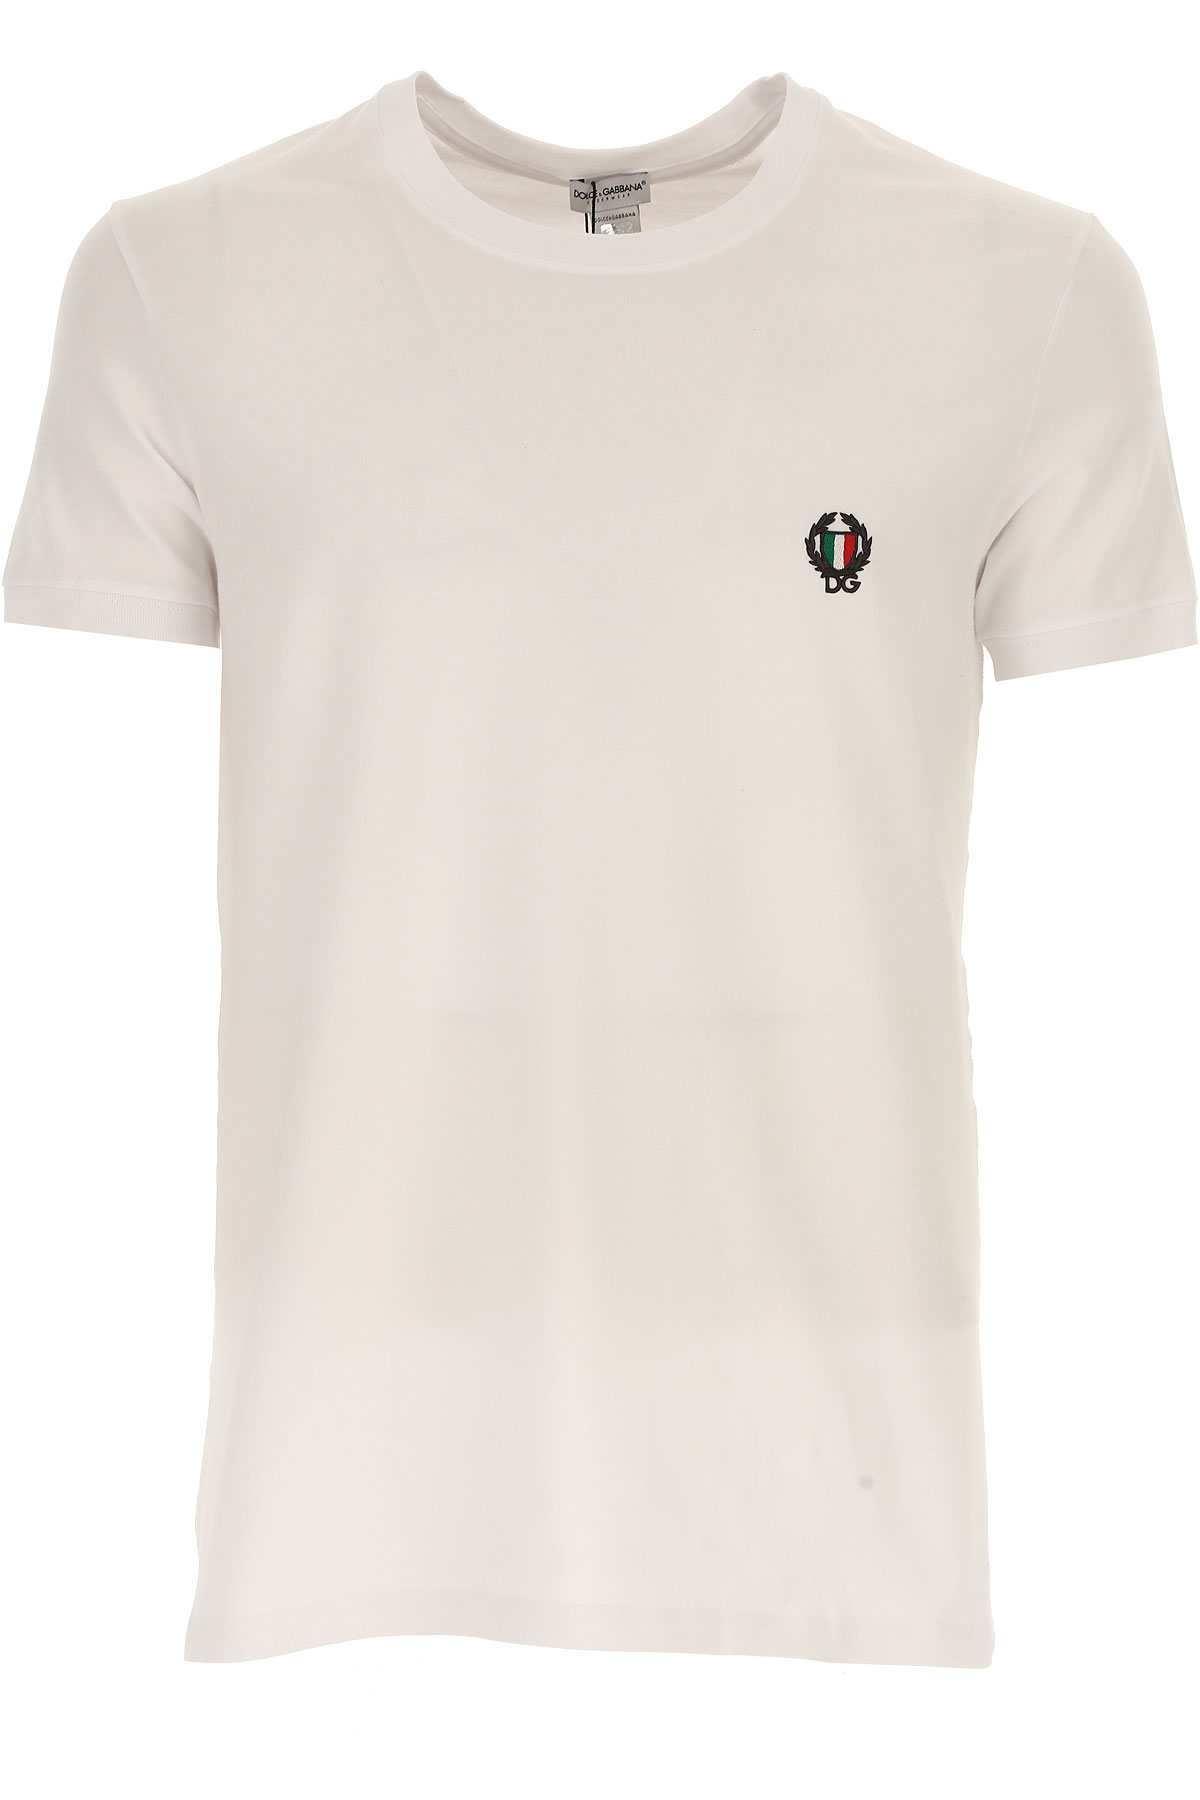 Dolce & Gabbana T-Shirt for Men, White, Cotton, 2021, L M S XS from Dolce & Gabbana